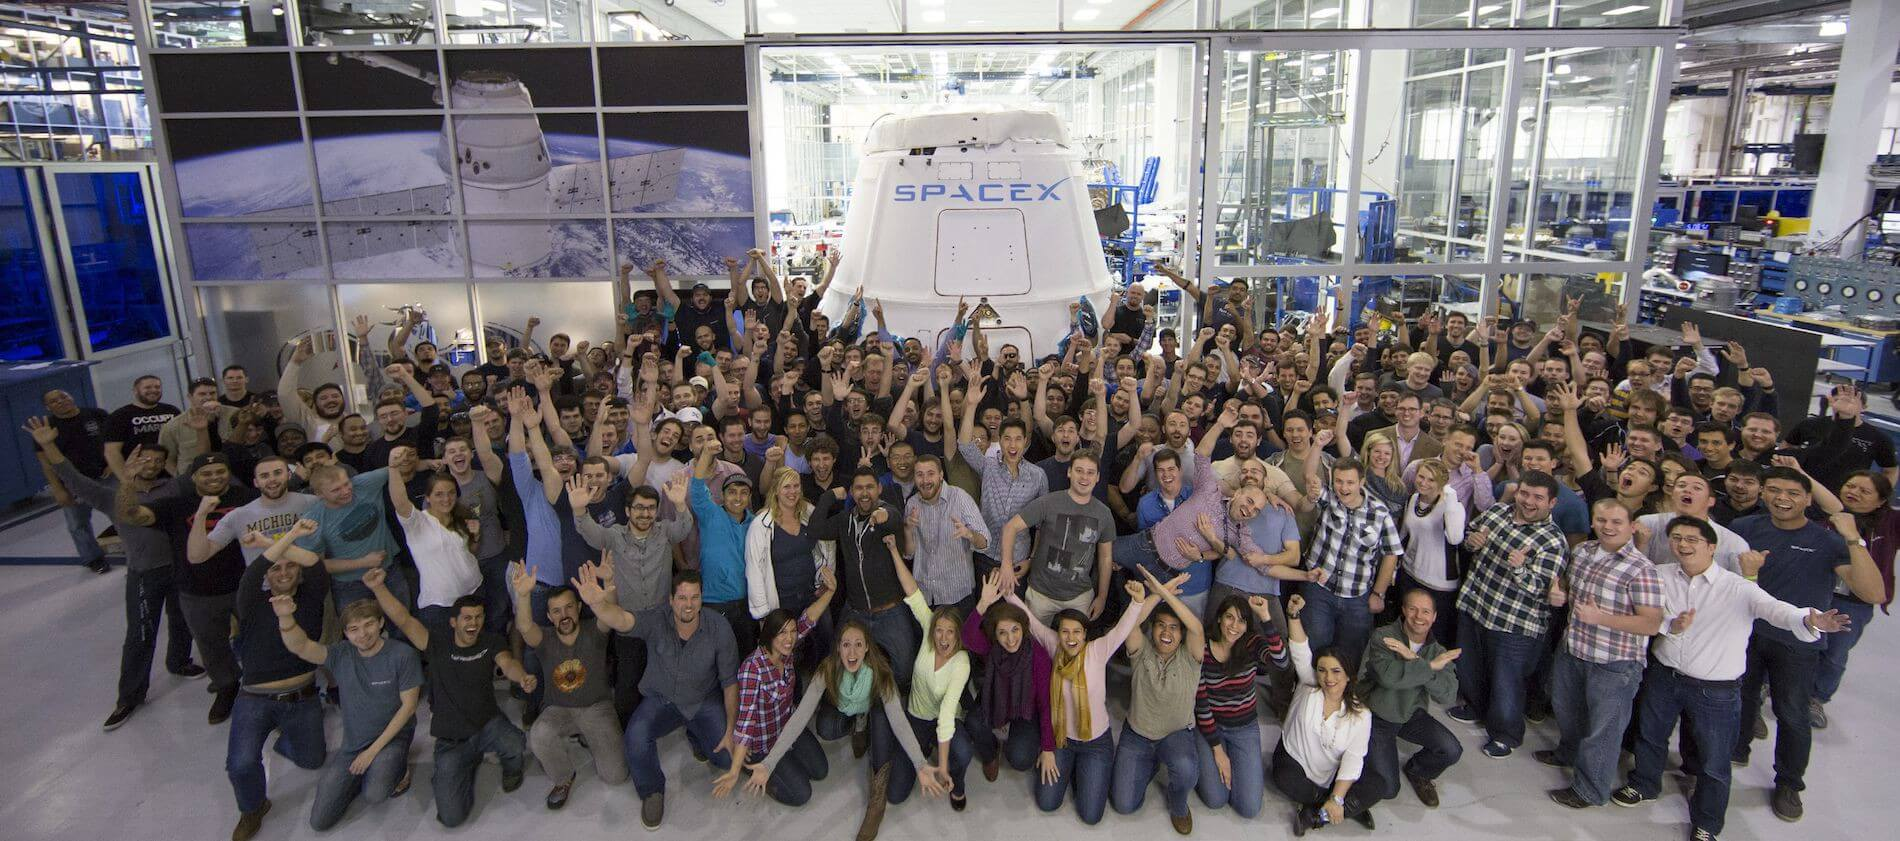 Space Exploration Excitement at SpaceX Dragon Launch